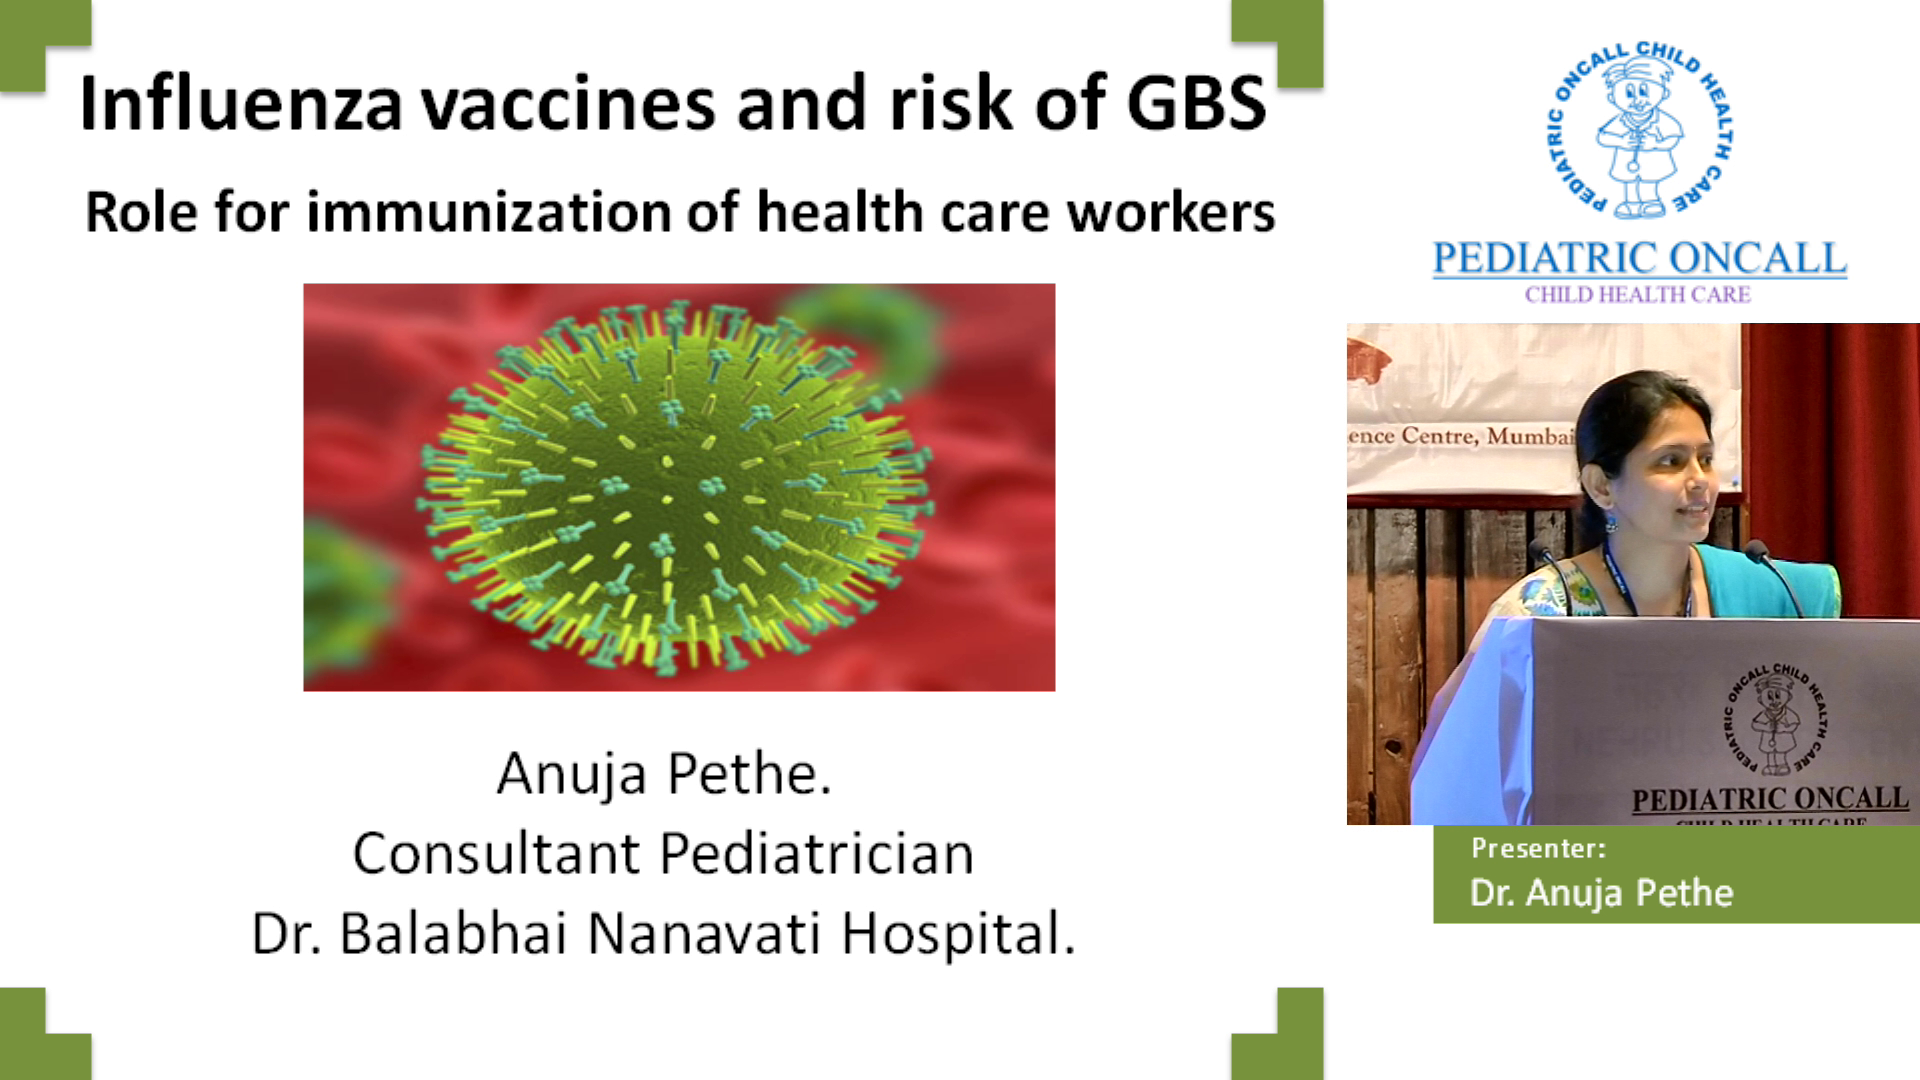 Influenza vaccines and risk of GBS